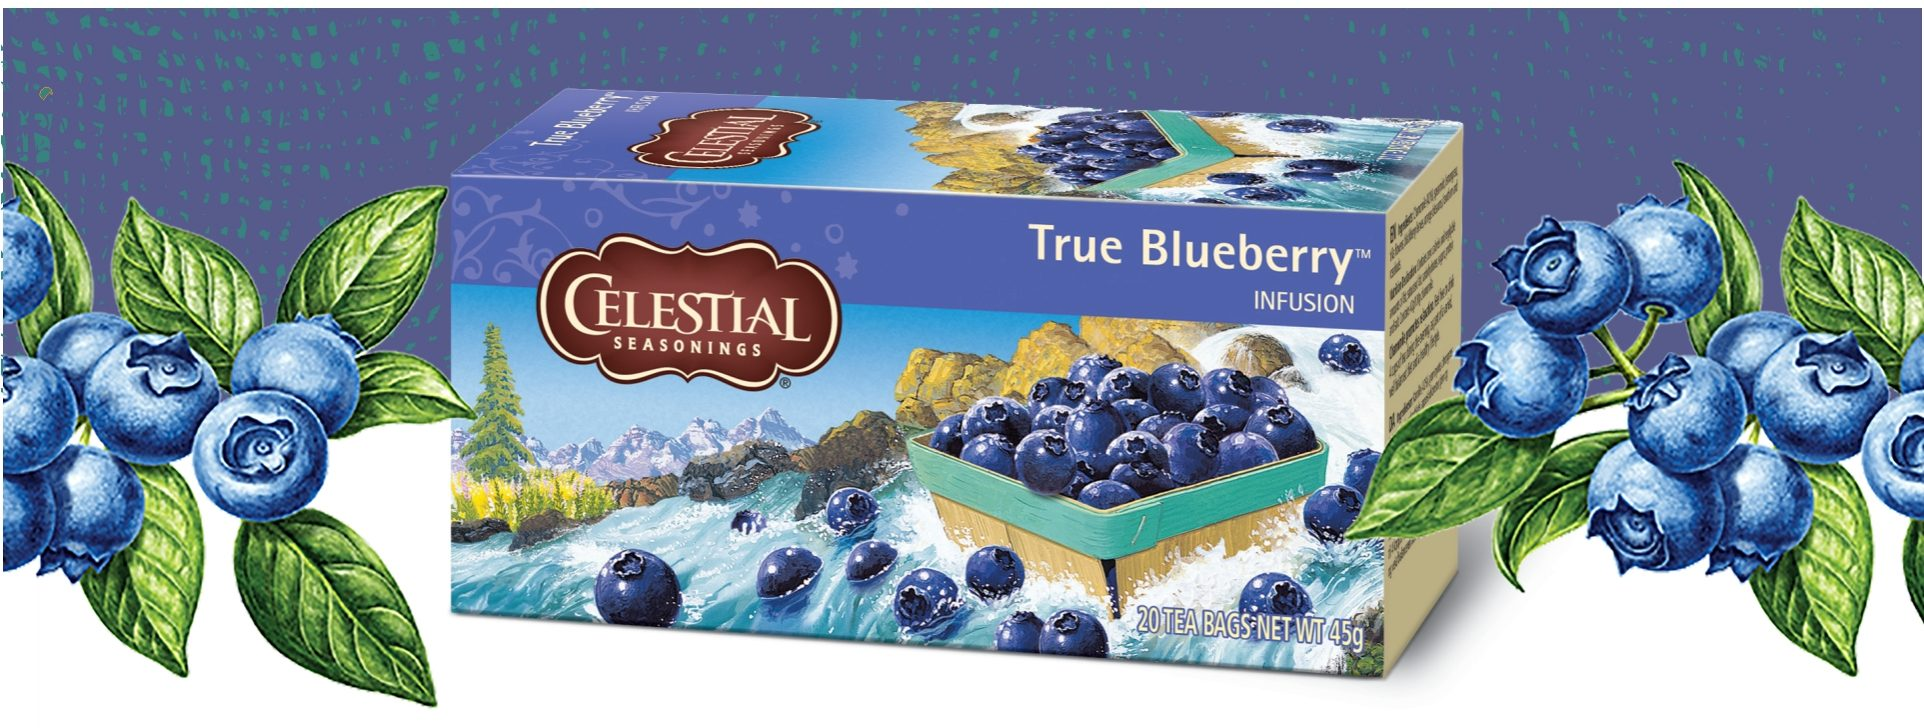 true_blueberry_titel